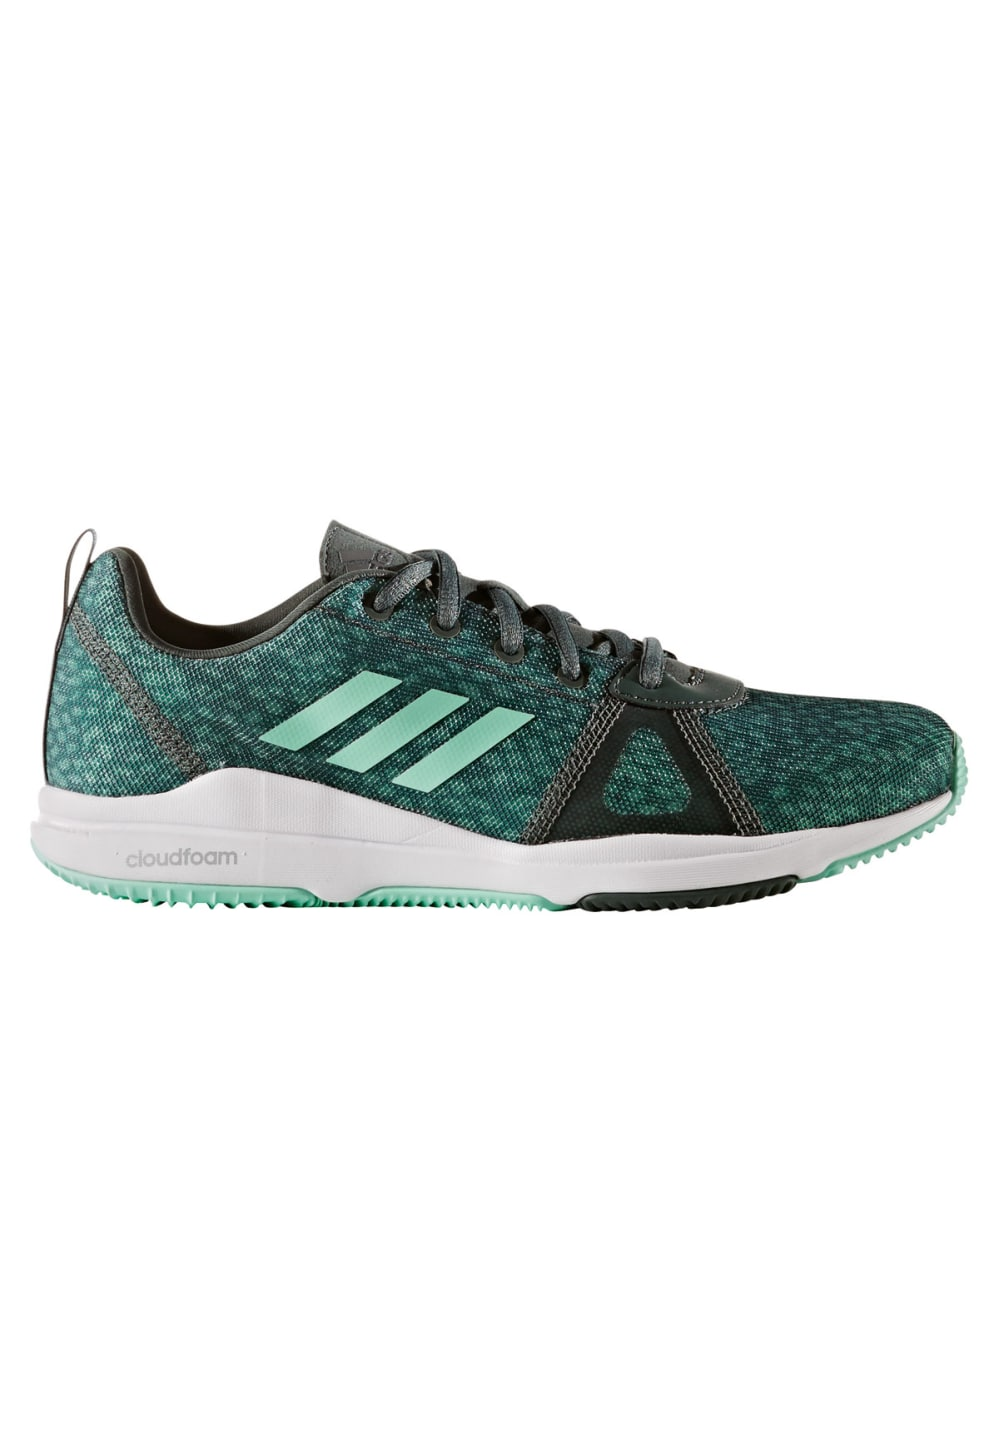 9eb90ae7bc3c adidas Arianna Cloudfoam - Fitness shoes for Women - Green